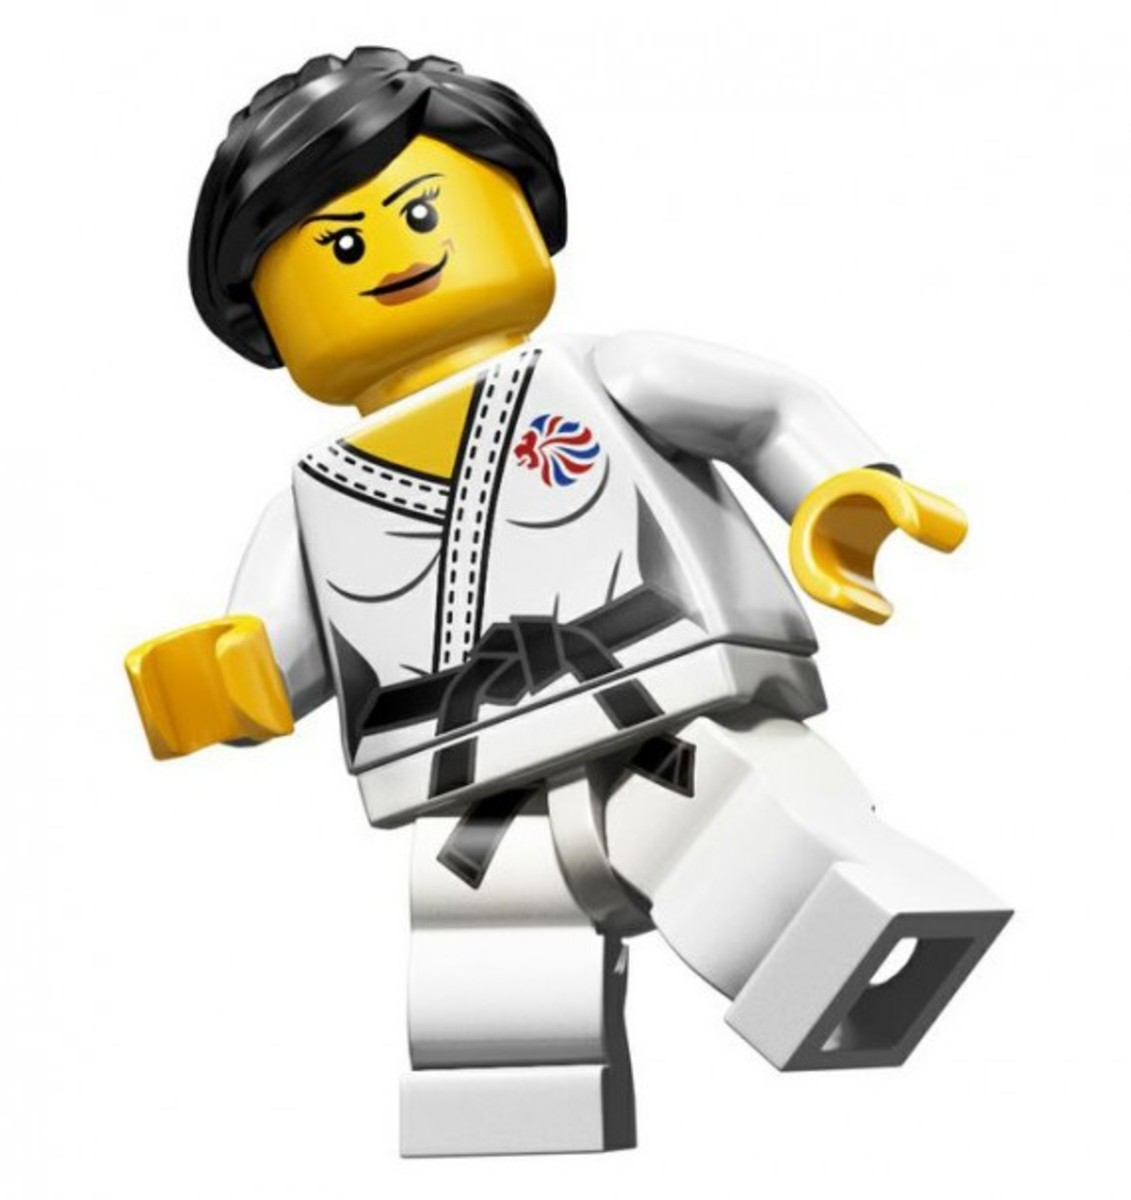 lego-team-great-britain-minifigures-judo-fighter